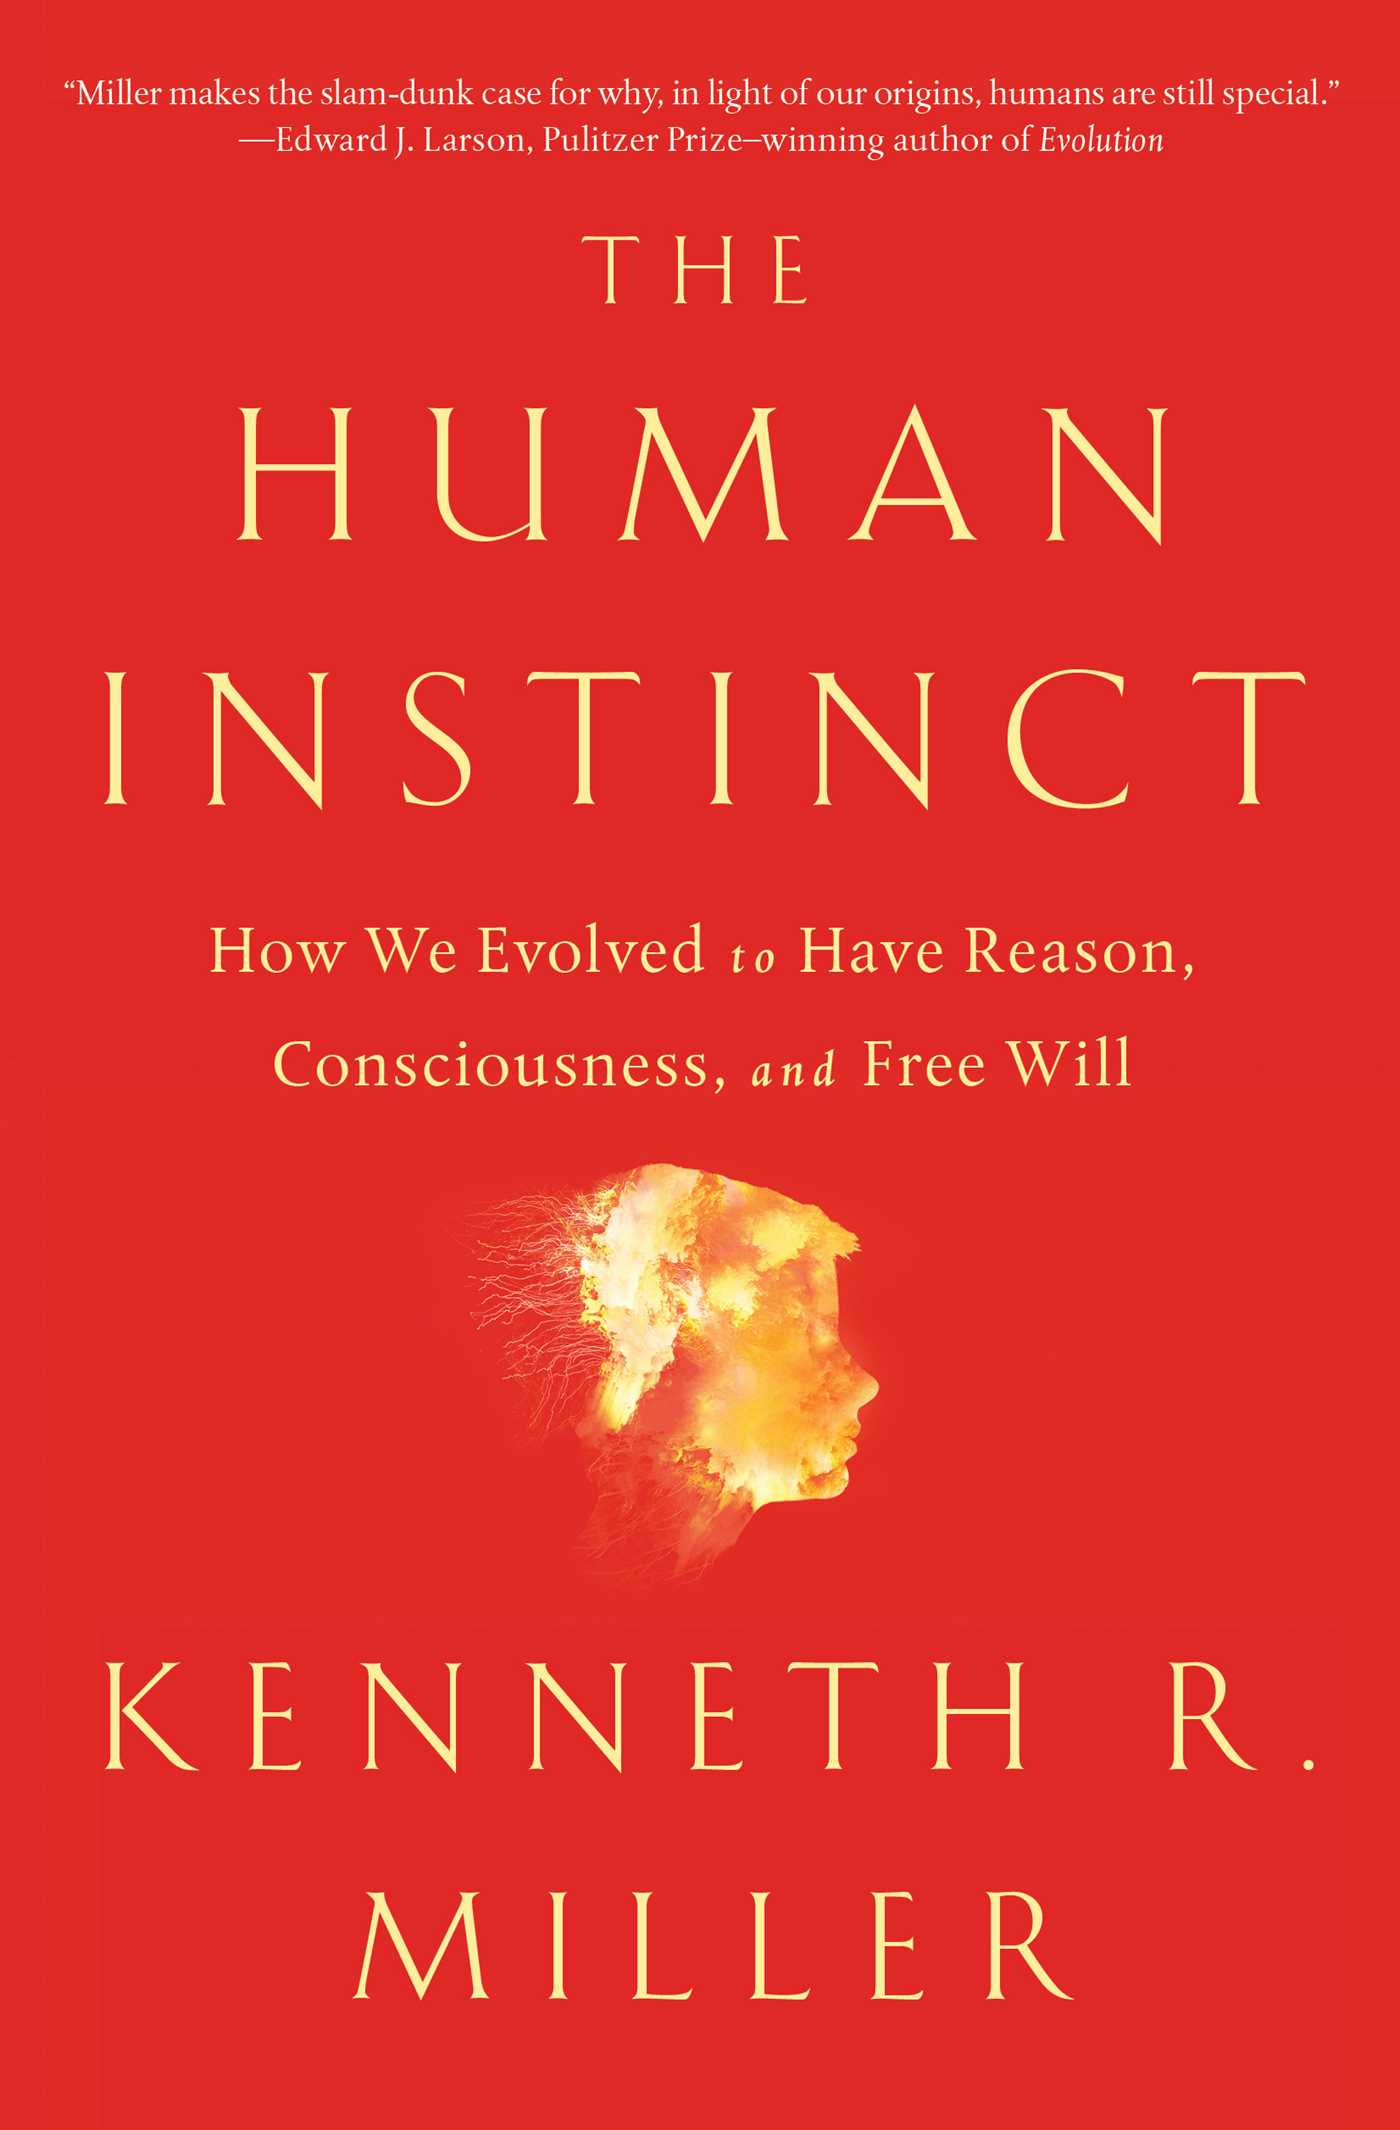 Book Cover Returns To Its Origins In >> The Human Instinct Book By Kenneth R Miller Official Publisher